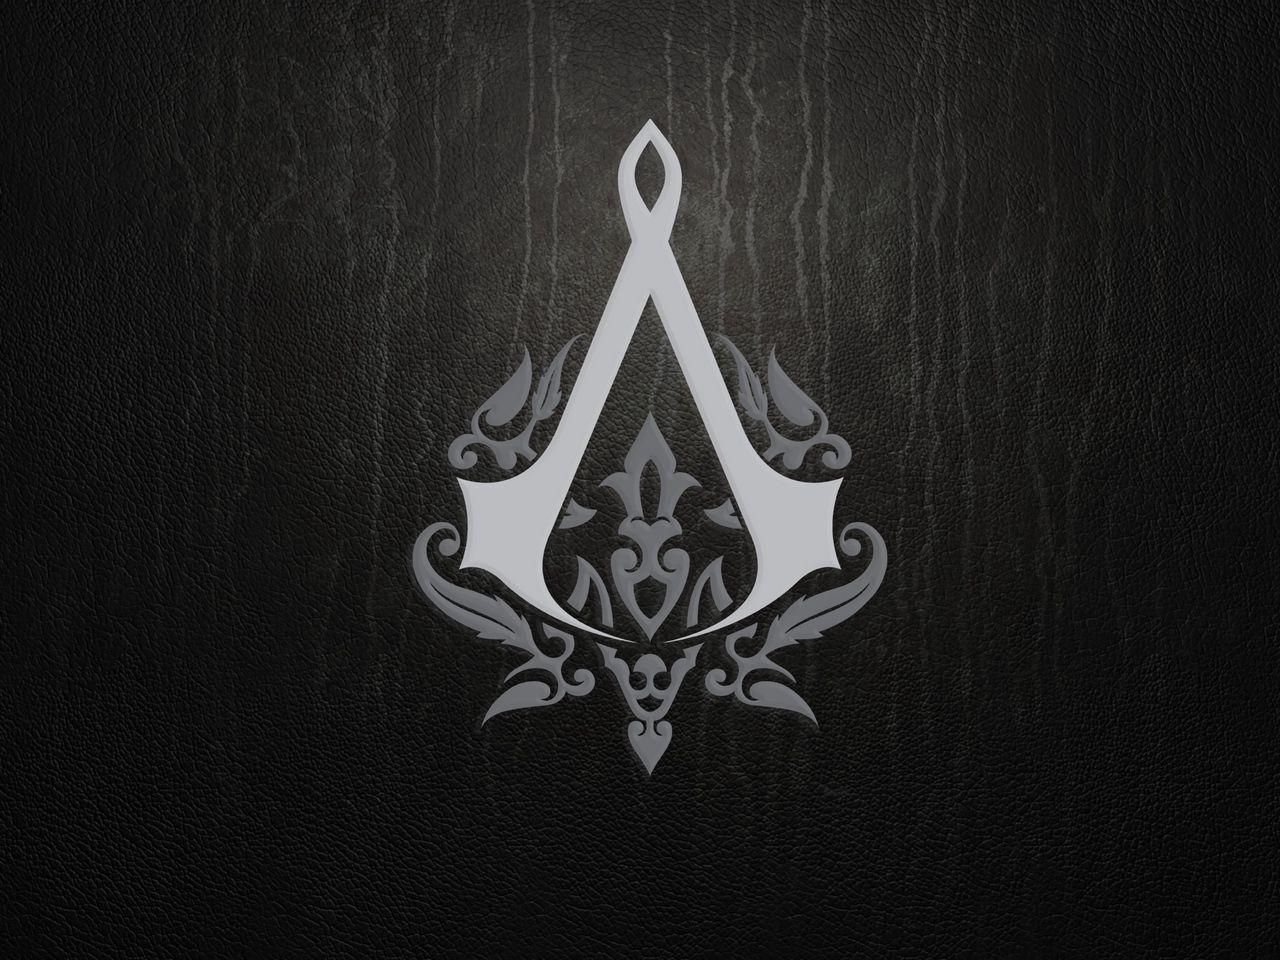 50+ Assassin's Creed All Symbols Wallpapers Download at